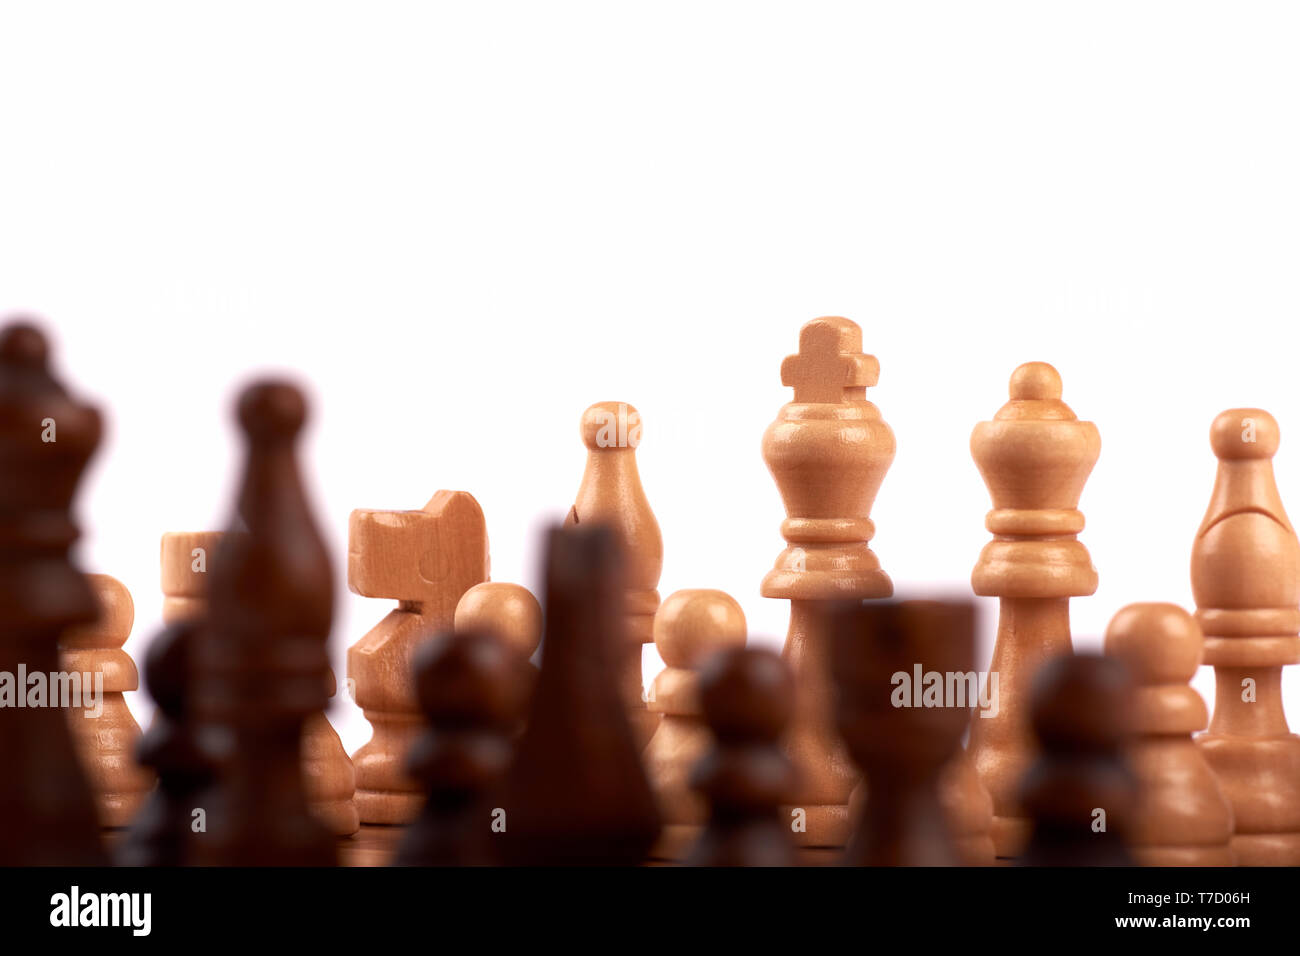 Wooden chess pieces in a duel on a chessboard. King, lady and shooter with horse. Out of focus team of enemies. Isolated on white background - Stock Image